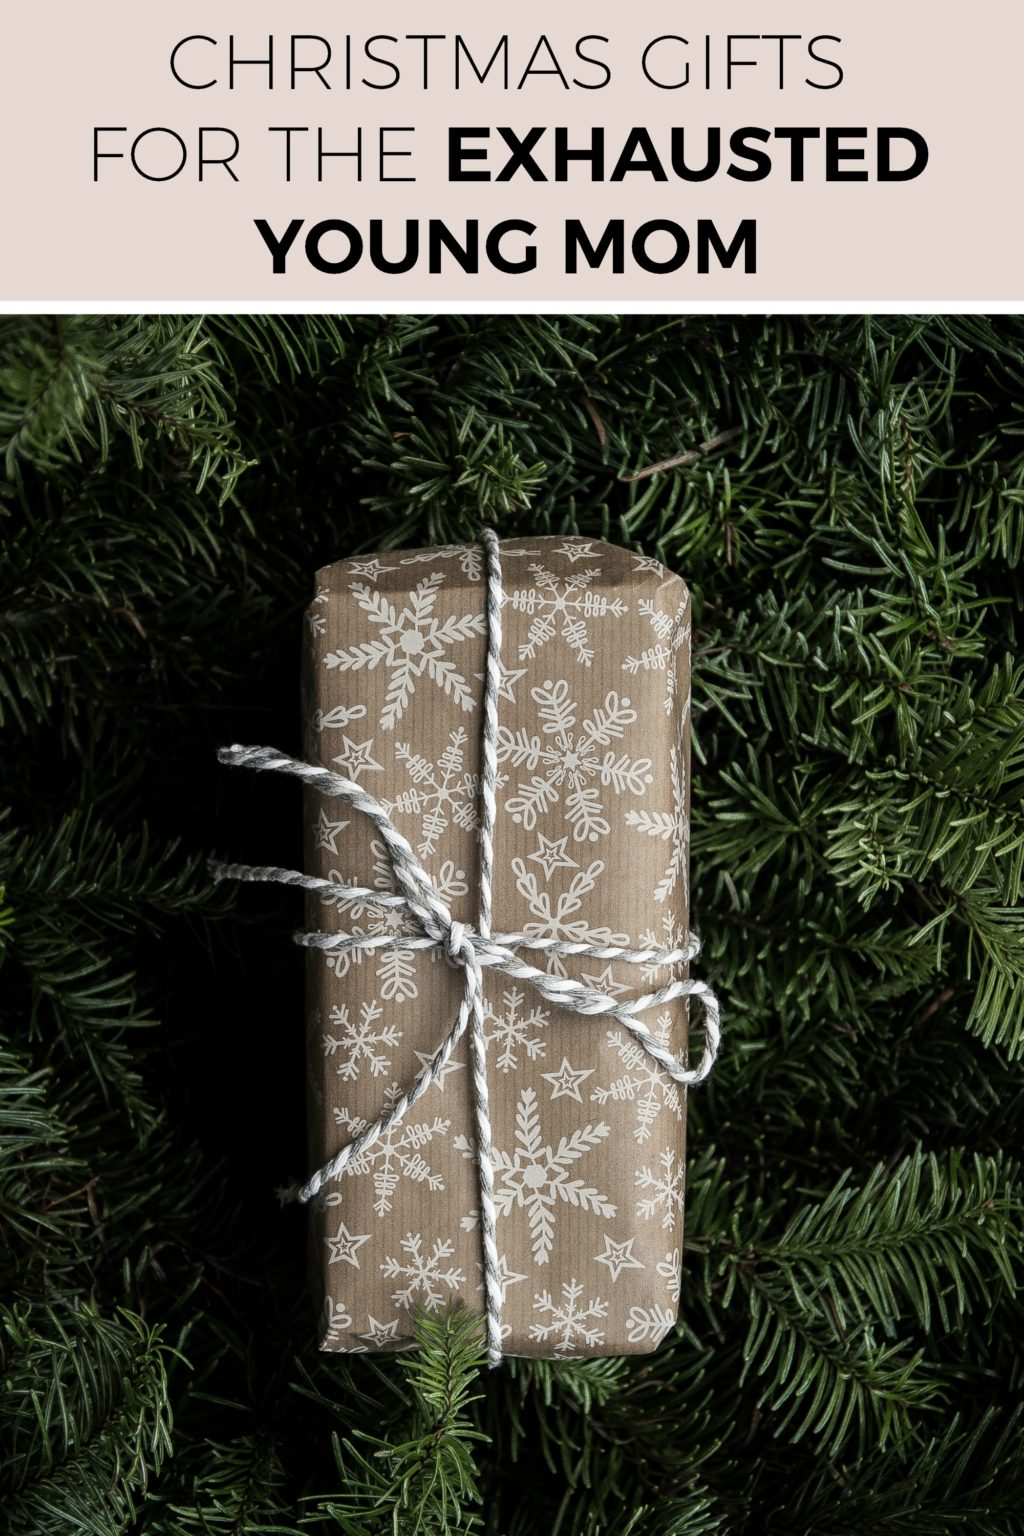 Check out these great gift ideas for young moms